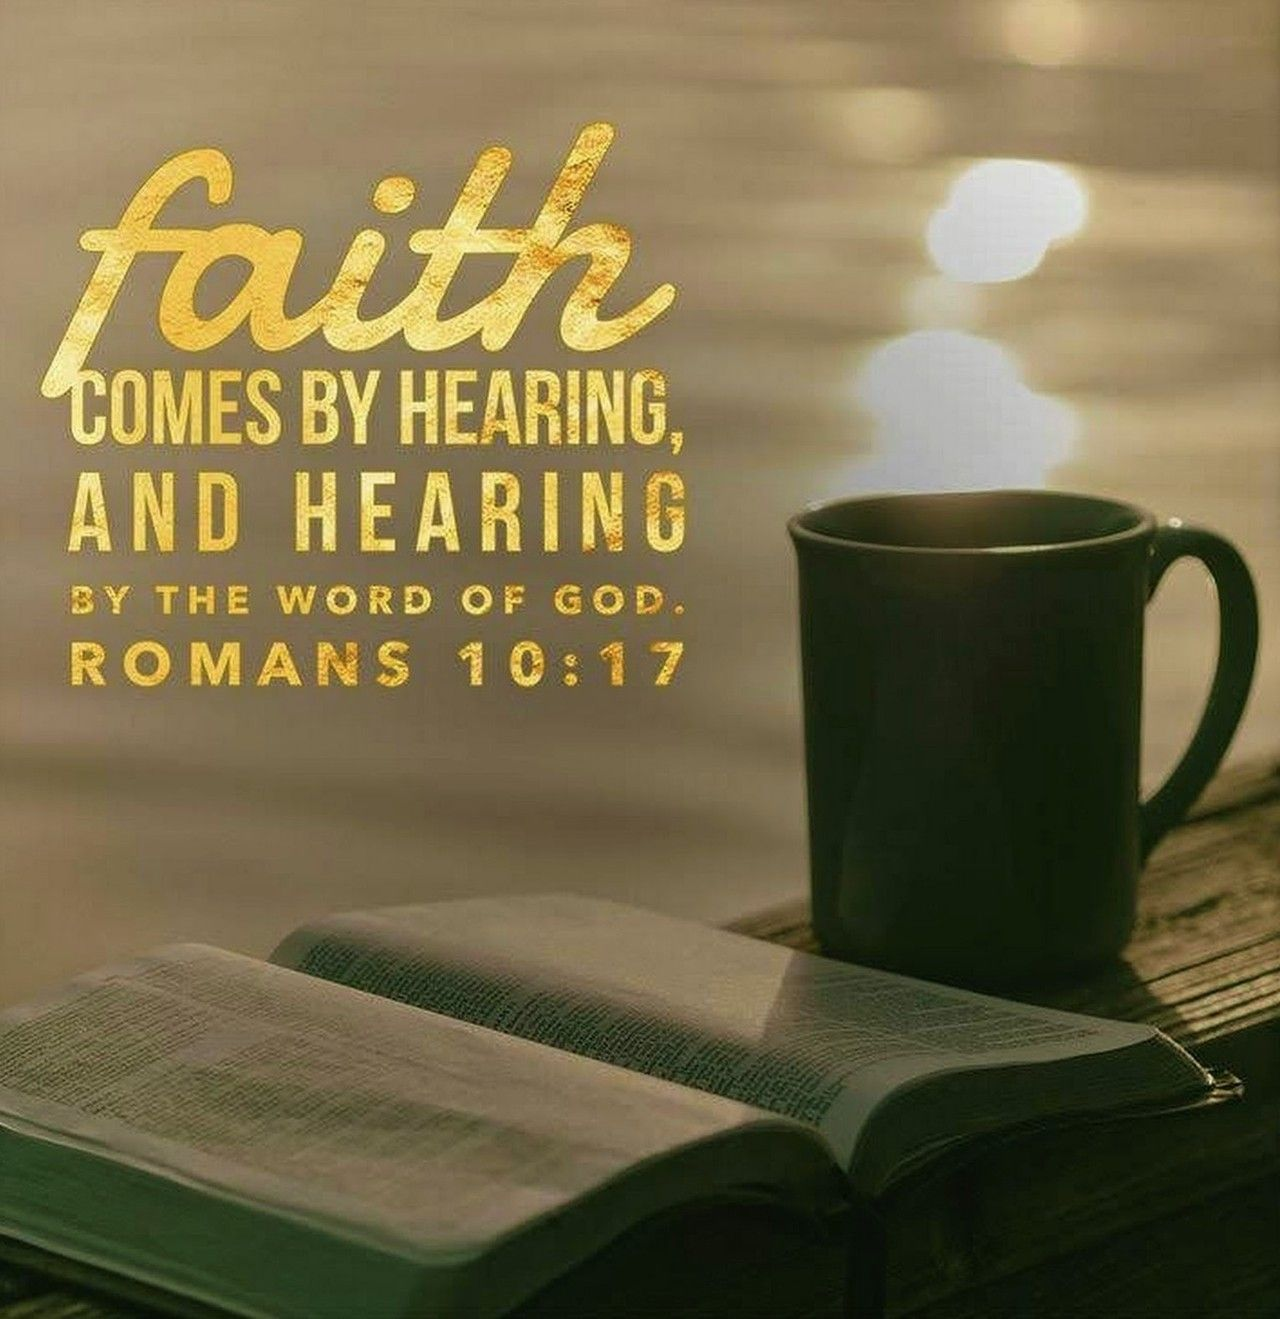 Romans 10:17 (NKJV) - So then faith comes by hearing, and